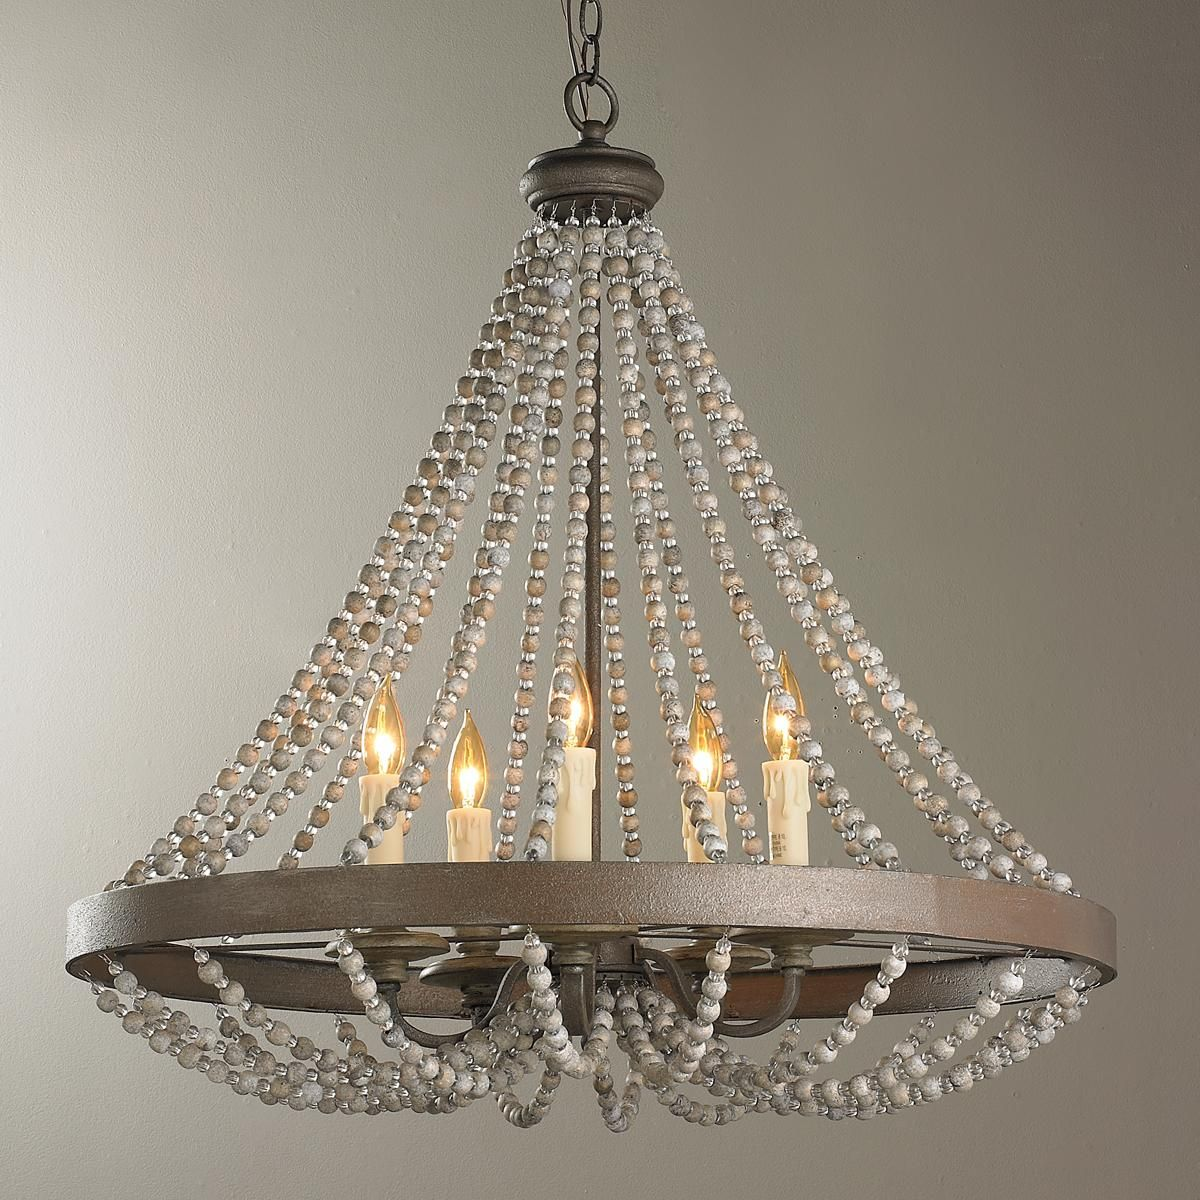 Rustic French Country Beaded Chandelier in 2019 | Rustic ...